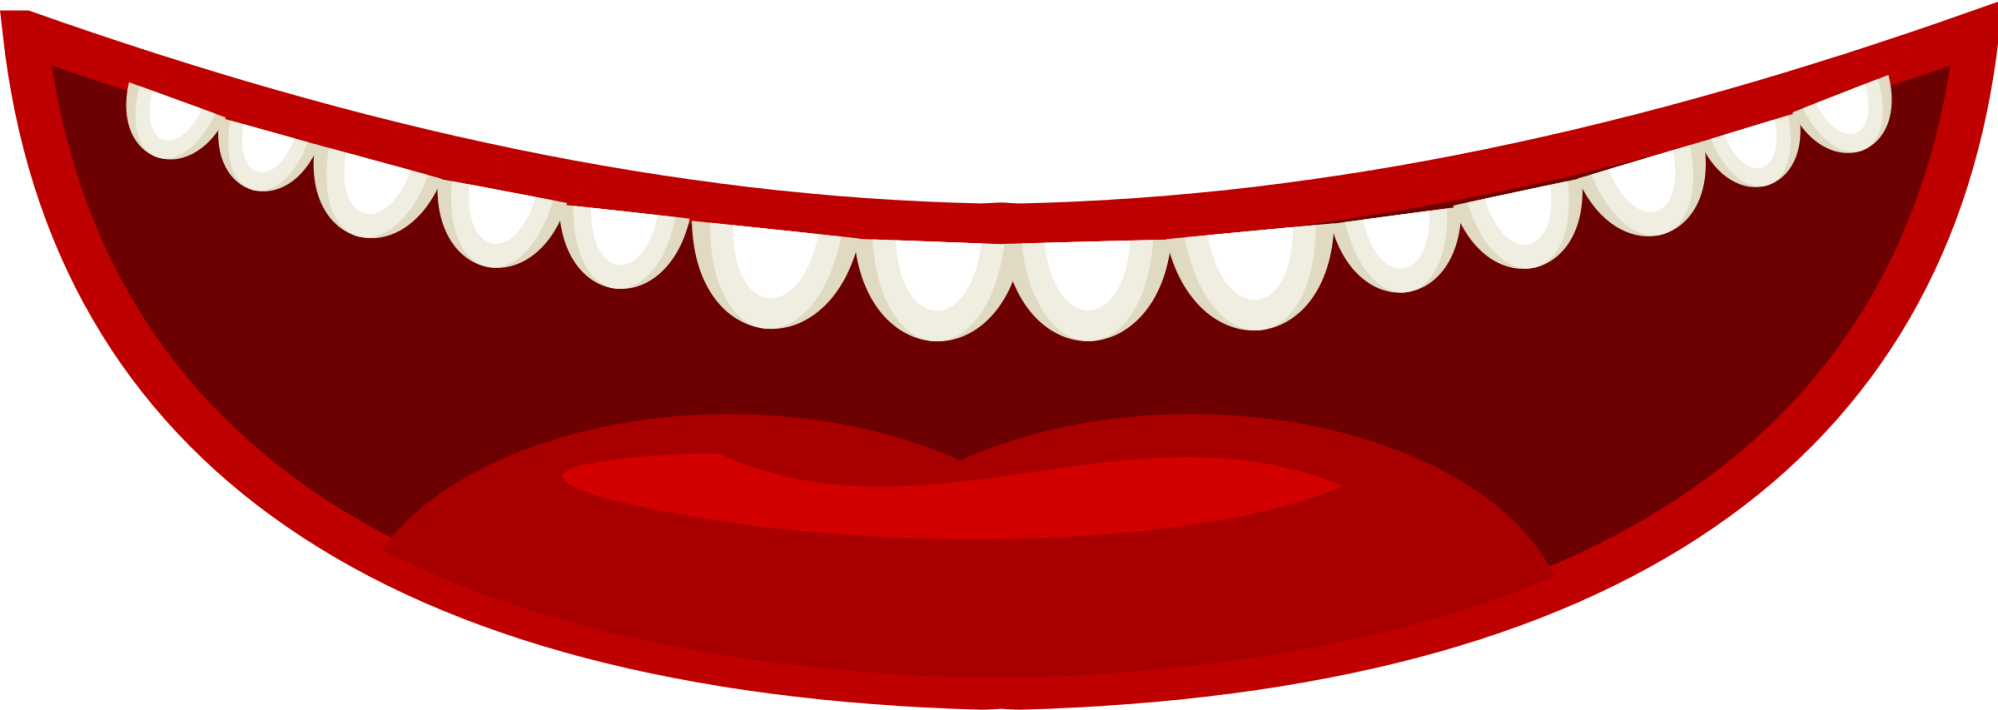 hight resolution of mouth clipart mouth talk big no teeth clip